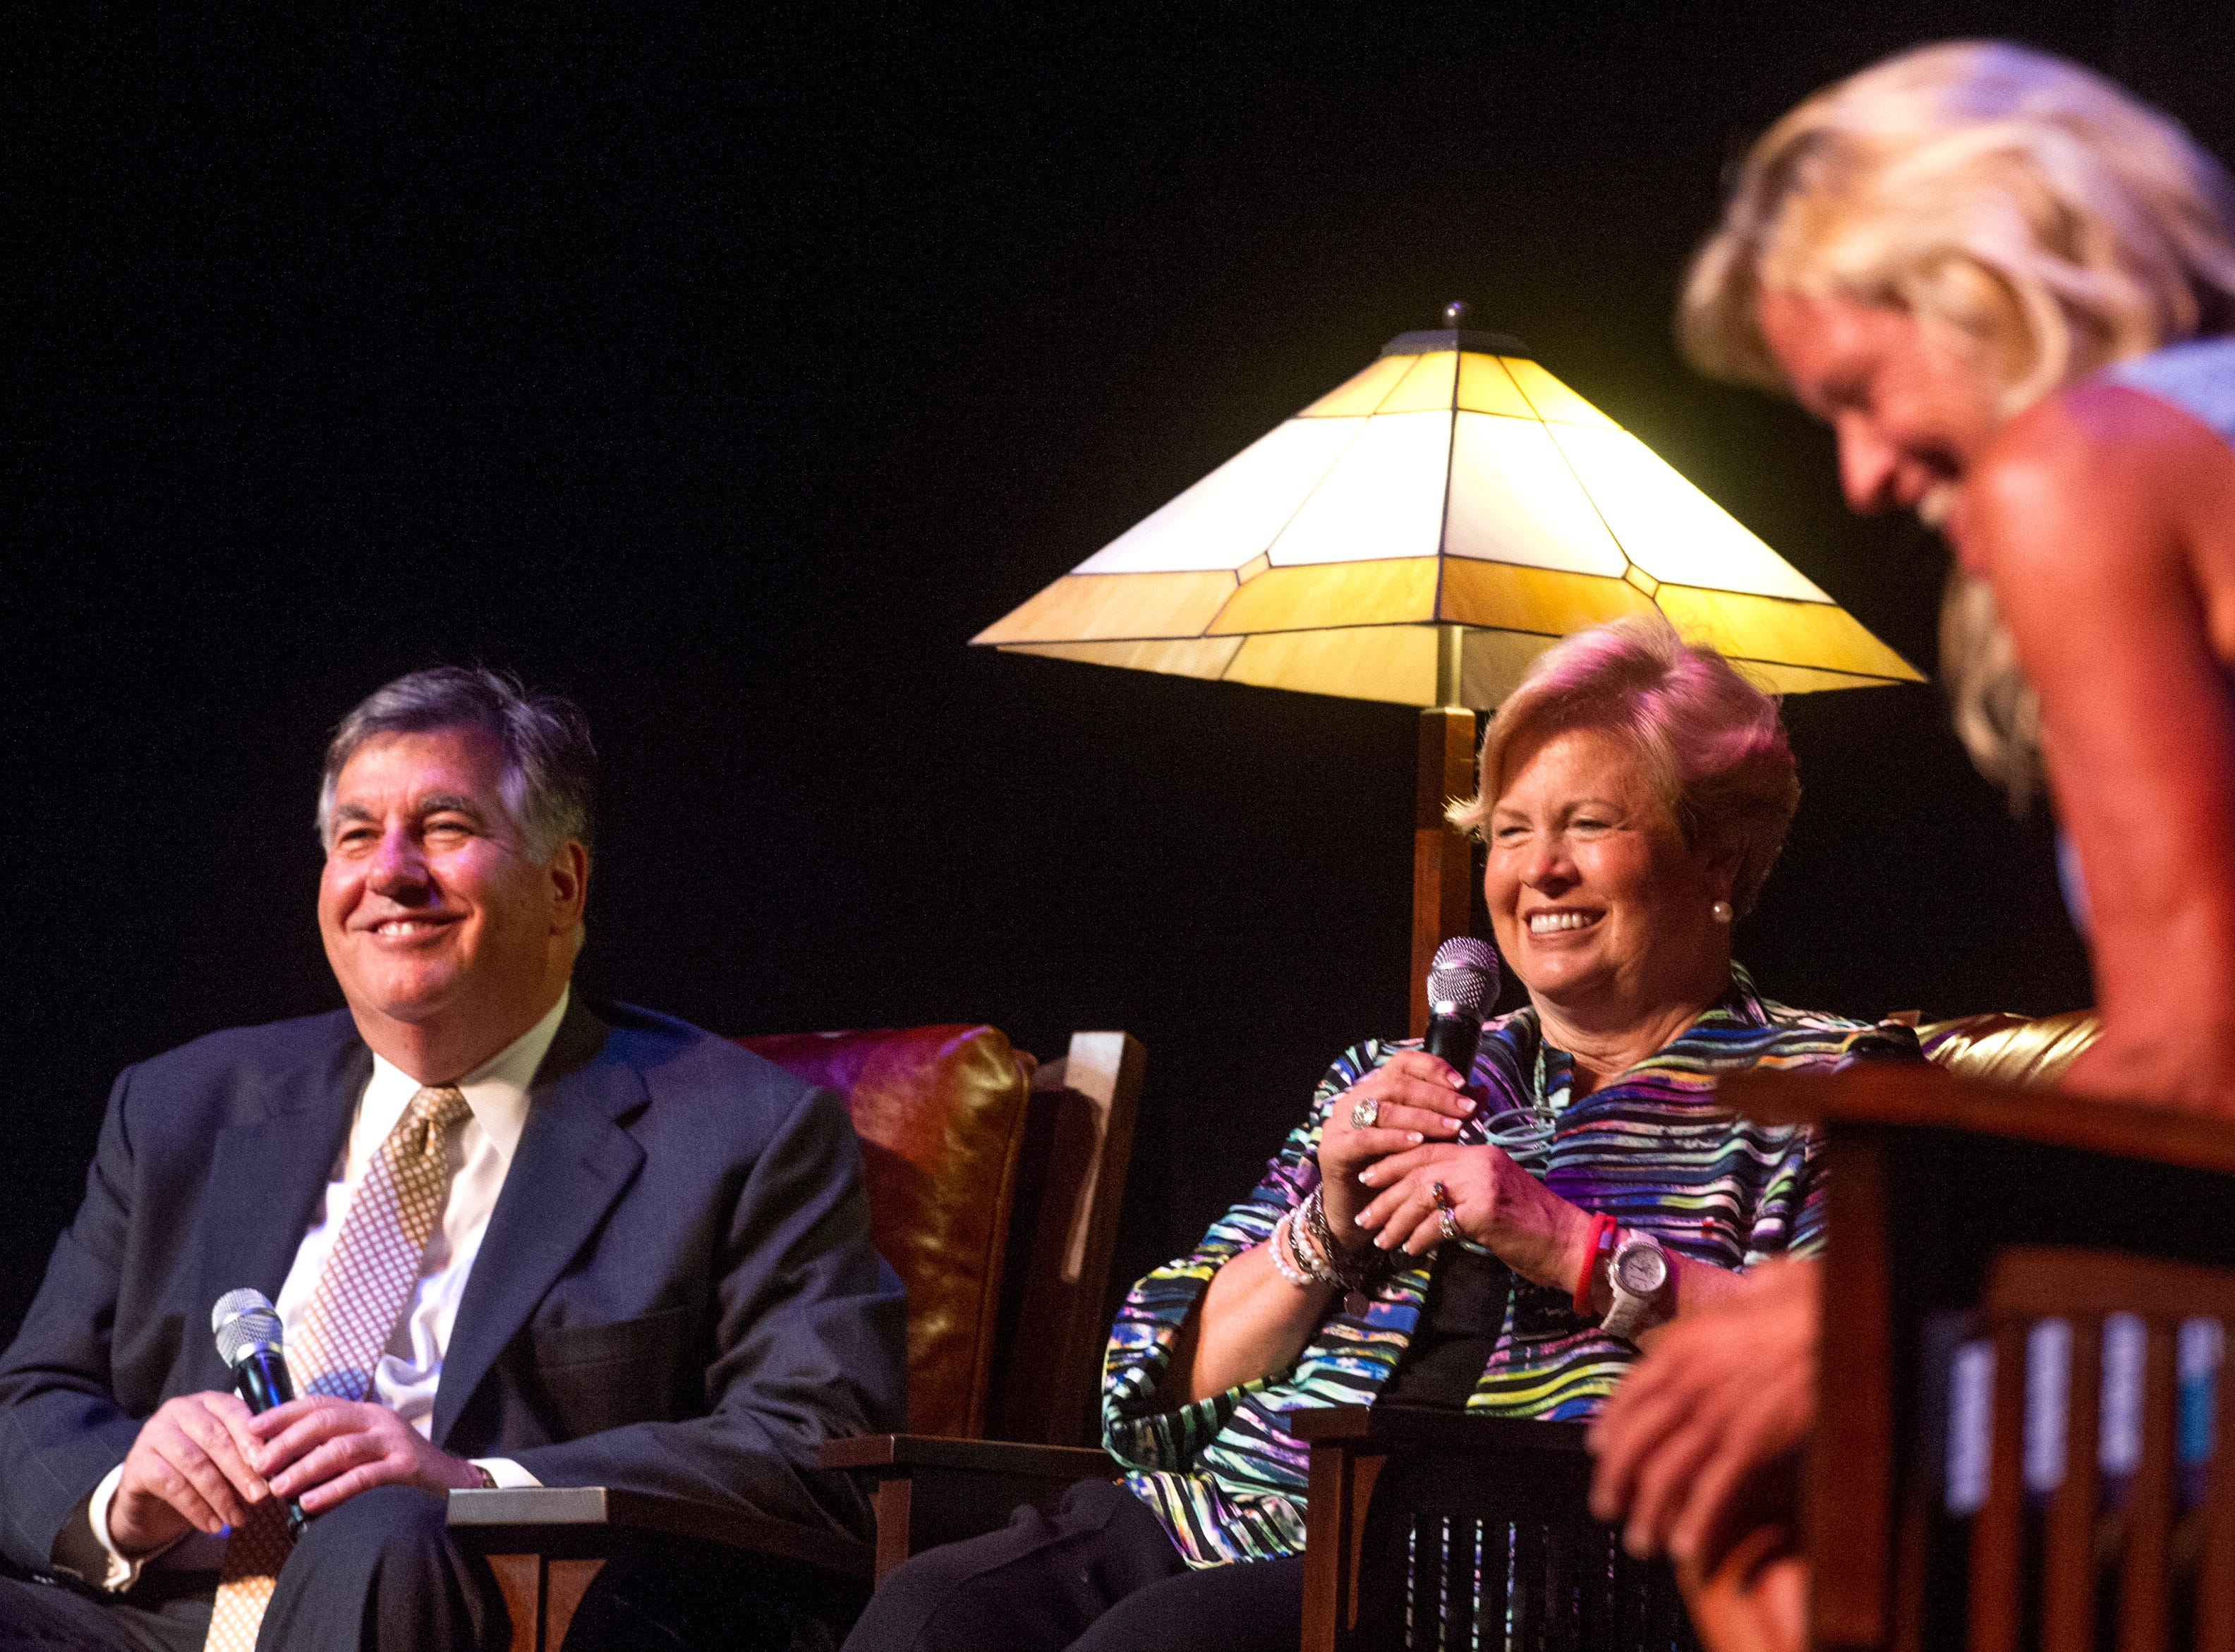 Director of Broadcasting at the University of Tennessee Bob Kesling (from left) and University of Tennessee women's athletic director emeritus Joan Cronan  share a laugh while reminiscing during An Evening of Champions, a celebration of Pat Summit and her career as a basketball coach benefitting both the St. Jude and Pat Summit Foundations, at the Tennessee Theater  Saturday, July 11, 2015.